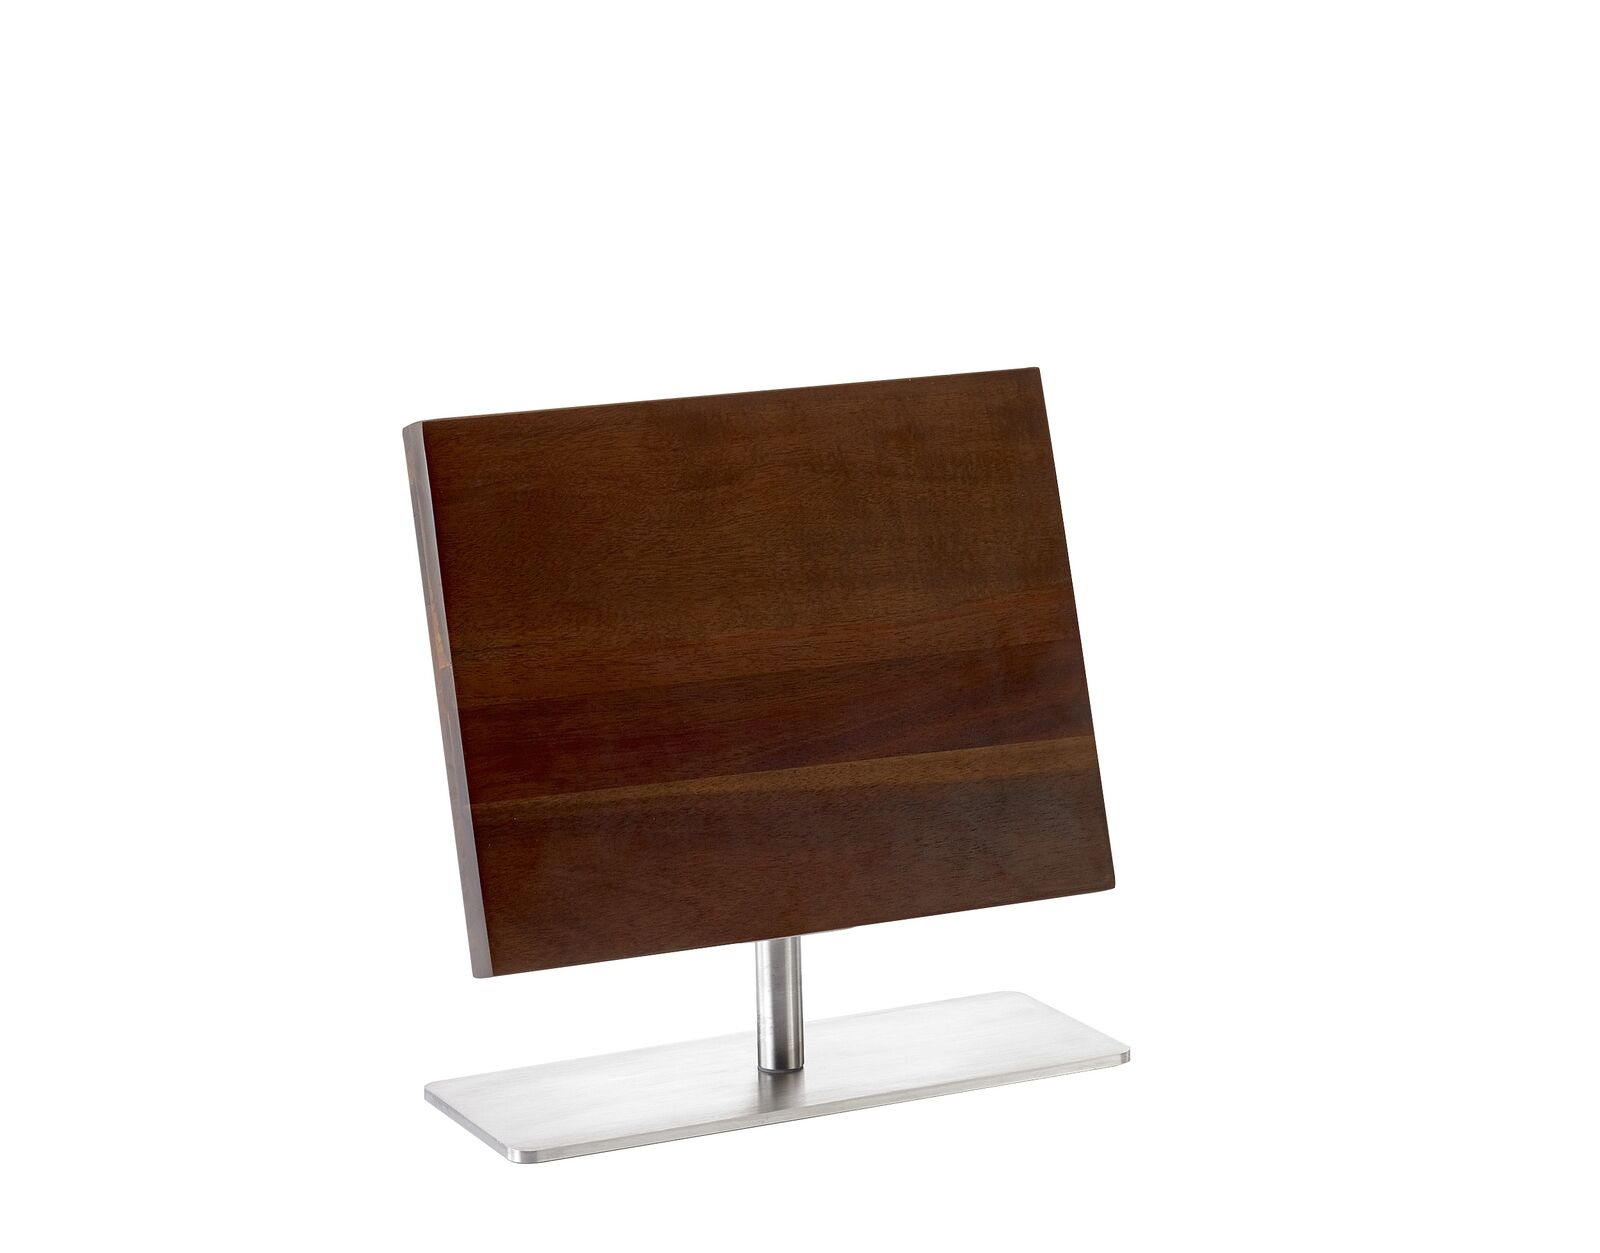 Mercer Culinary Acacia Magnetic Knife Board with Stand - Medium